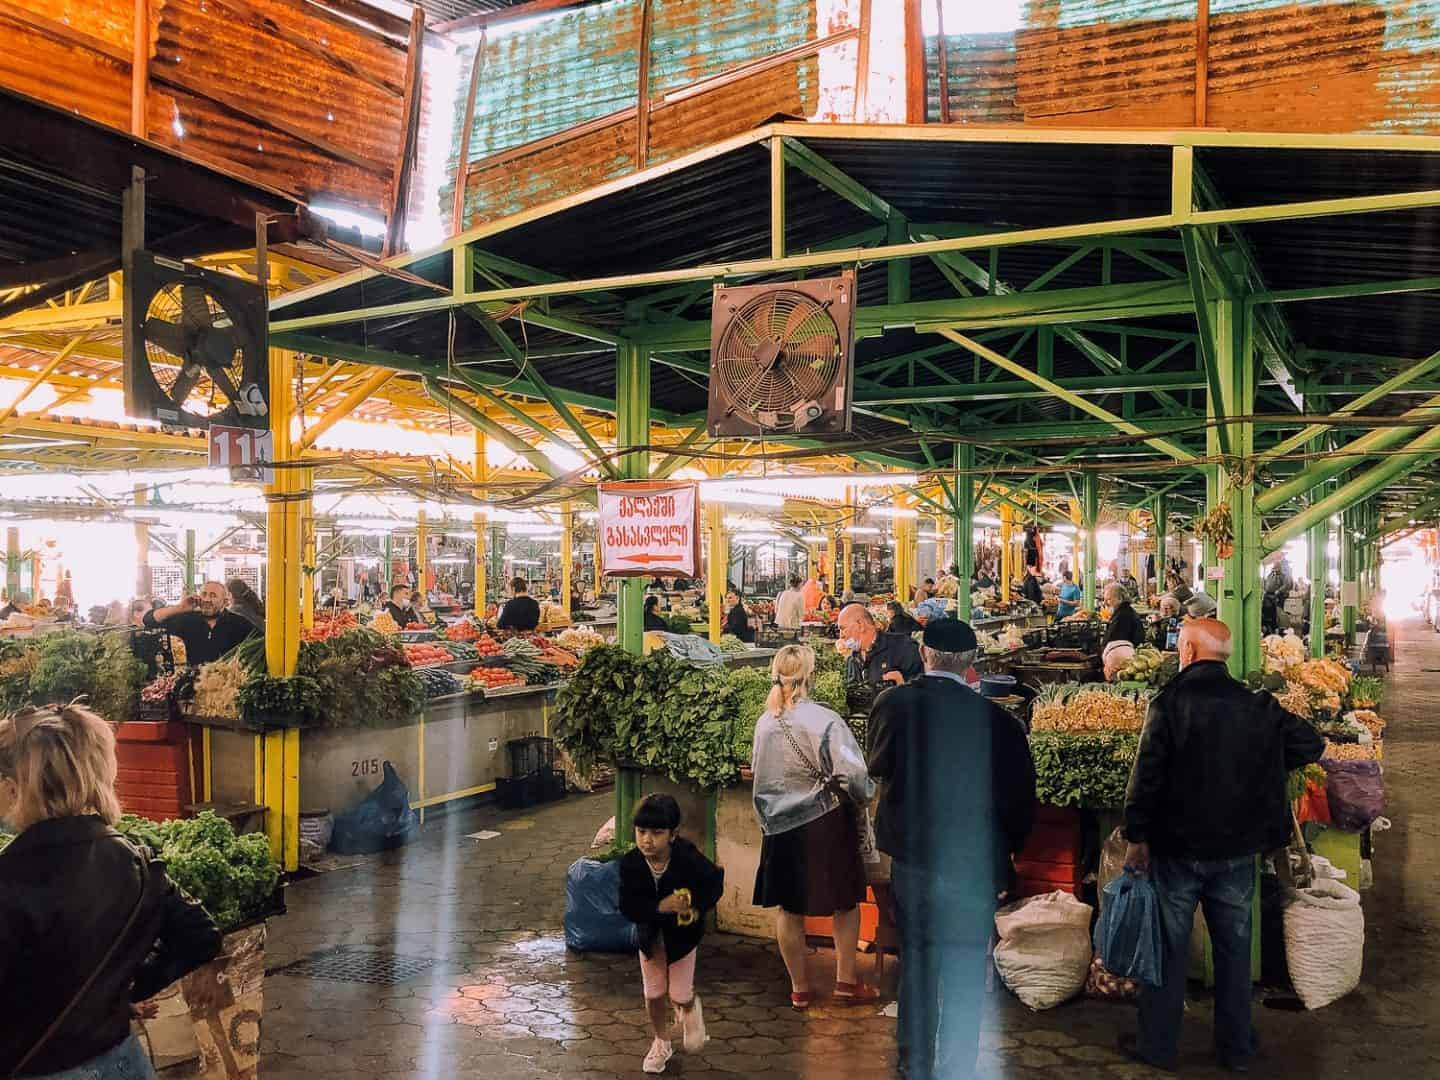 market filled with food and people